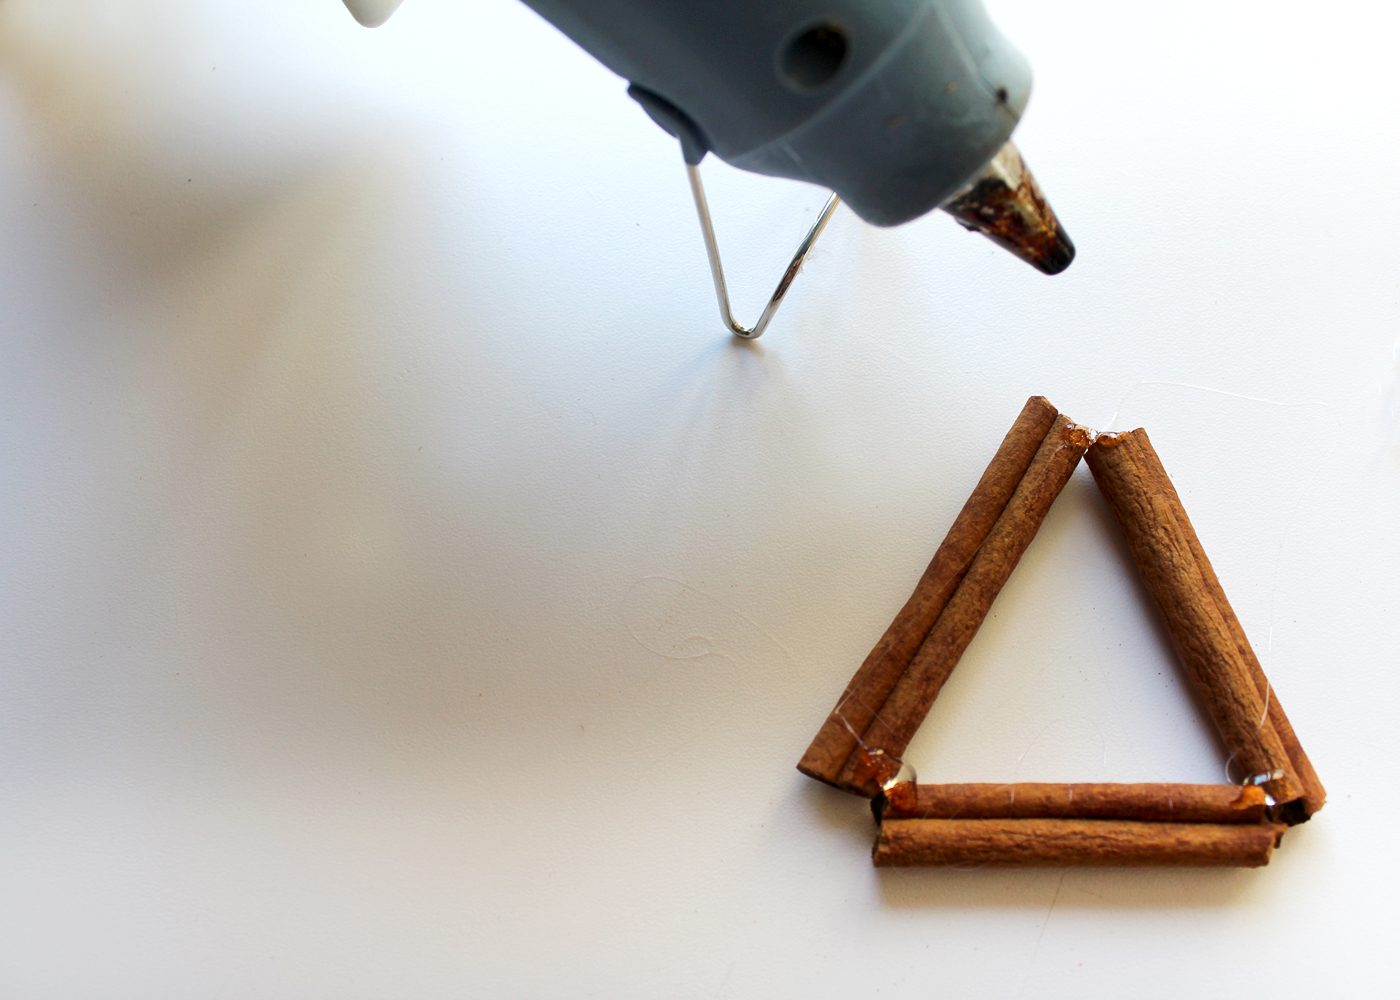 glue cinnamon sticks into triangle shape